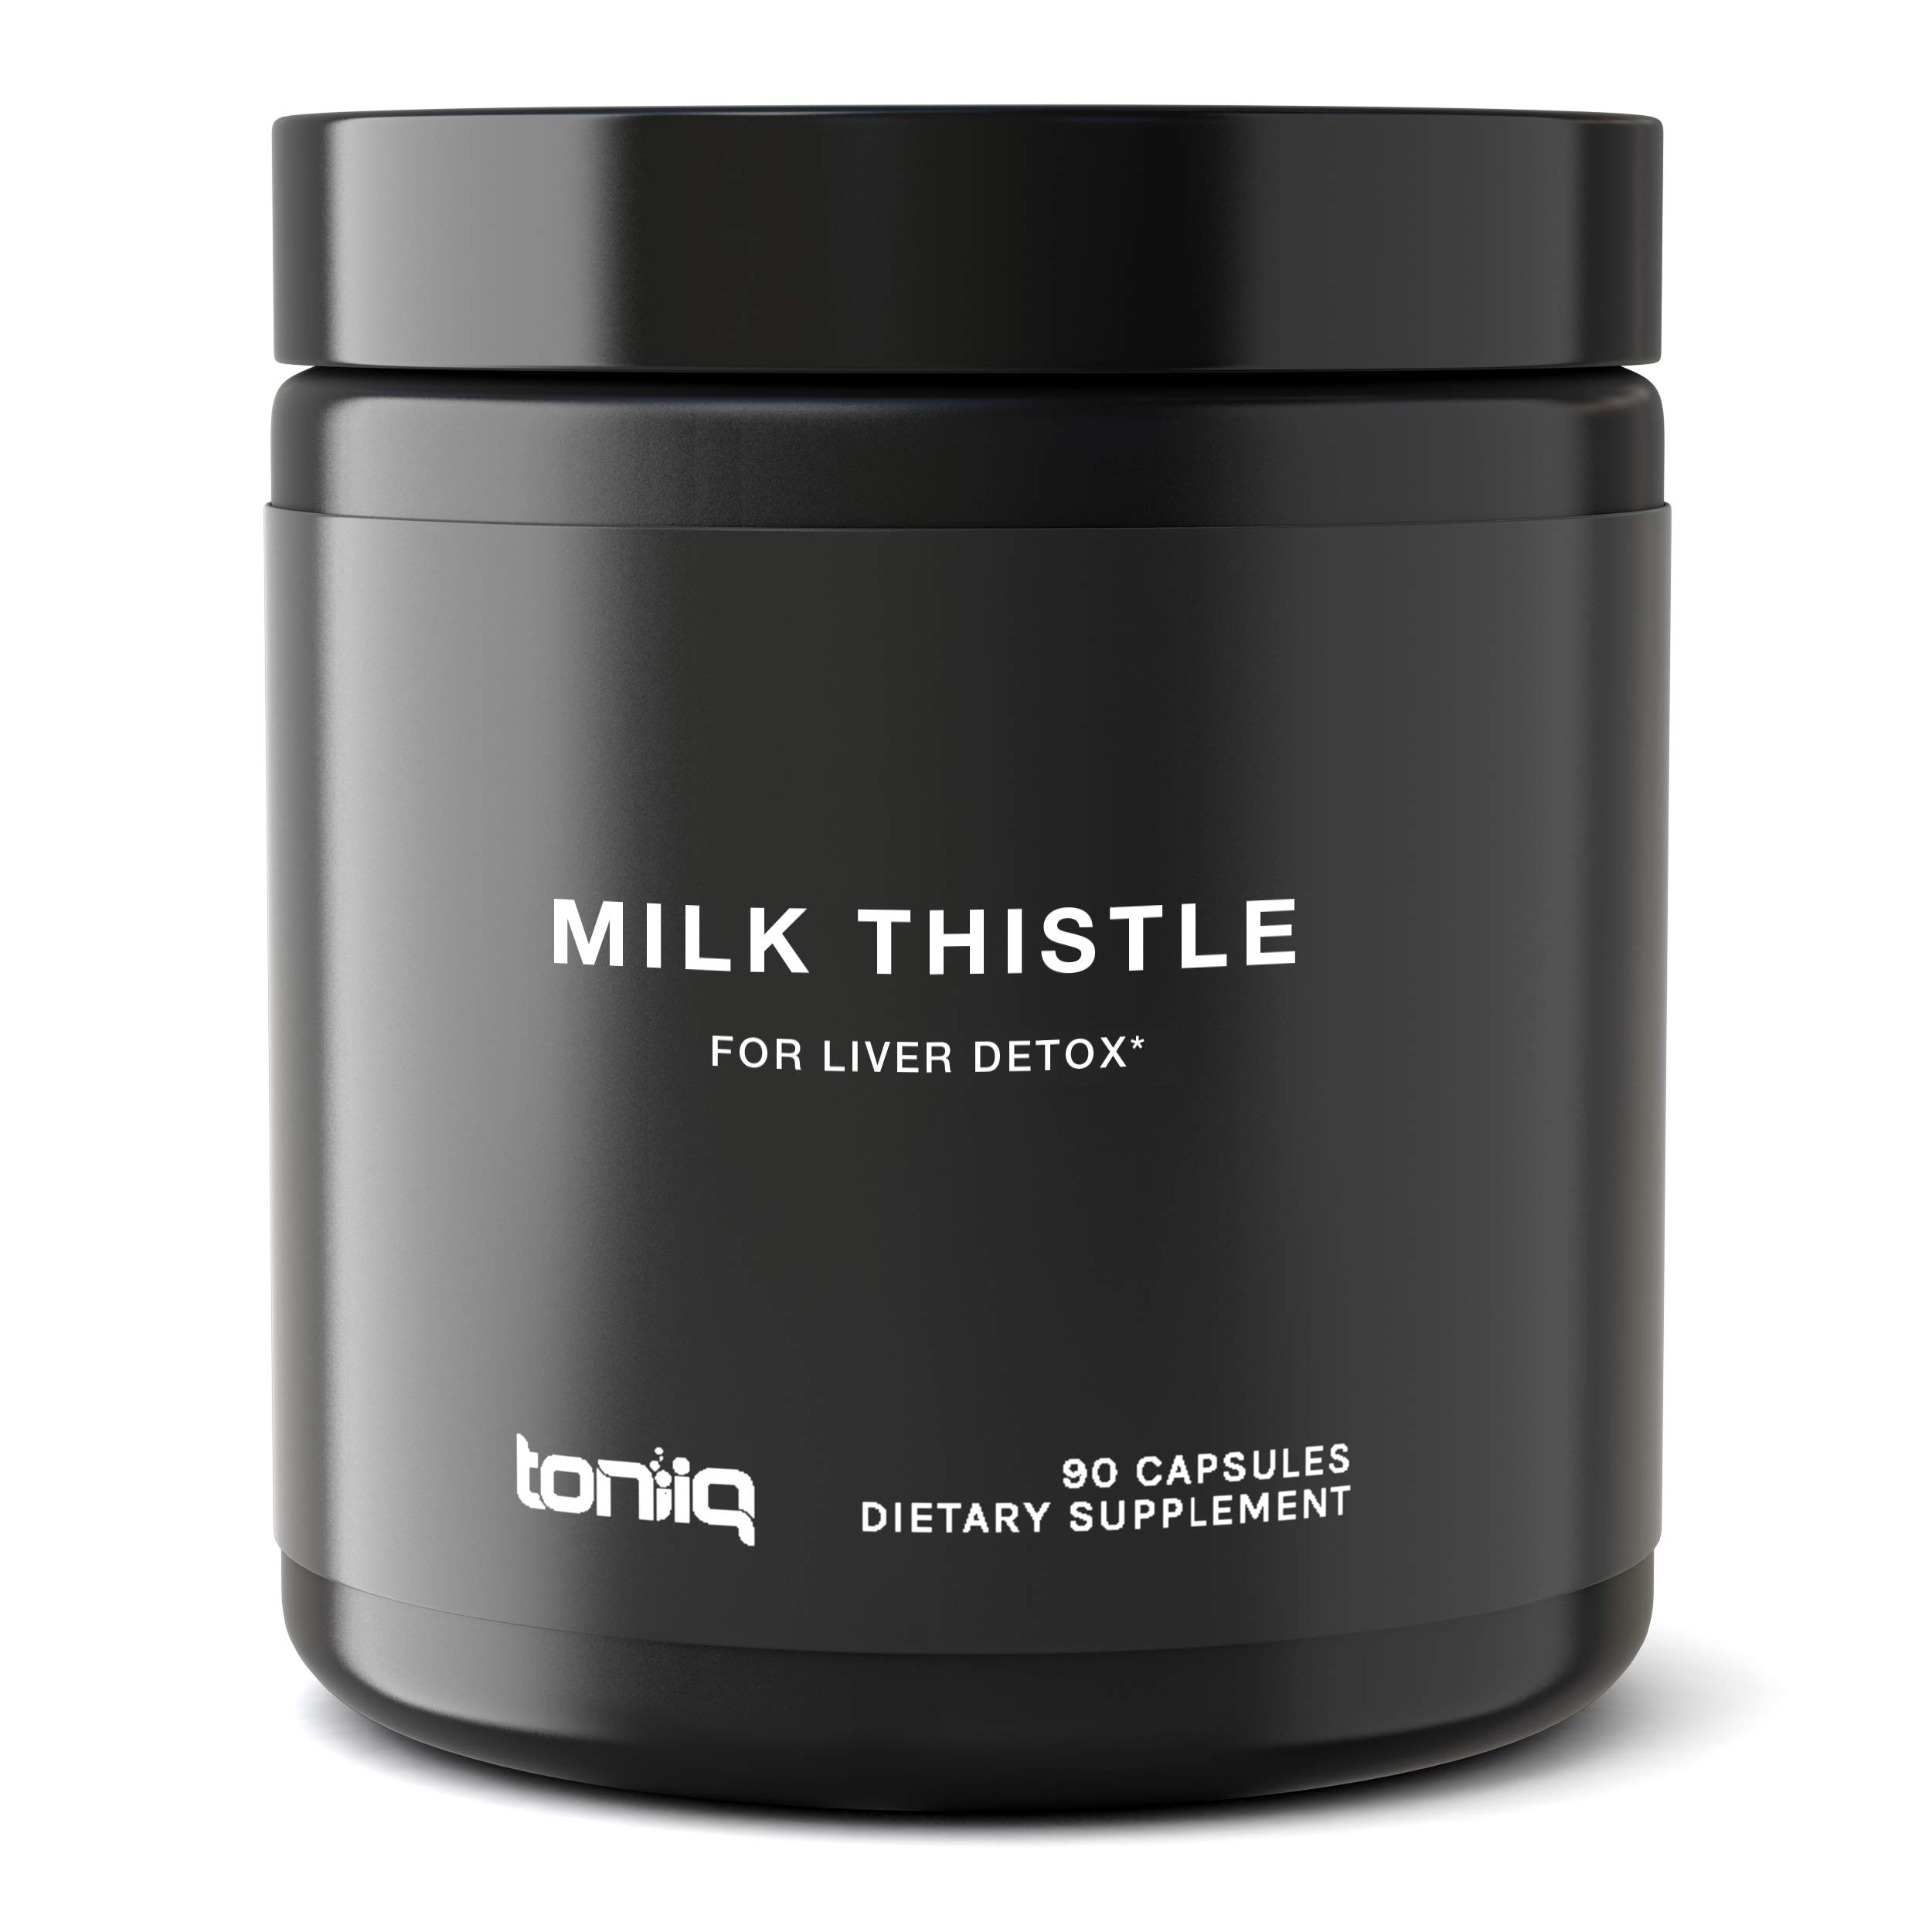 Ultra High Strength Organic Milk Thistle Capsules - 25,000mg 50x Concentrated Extract - The Strongest Milk Thistle Supplement Available - 80% Silymarin - Liver Support Supplement - 90 Capsules